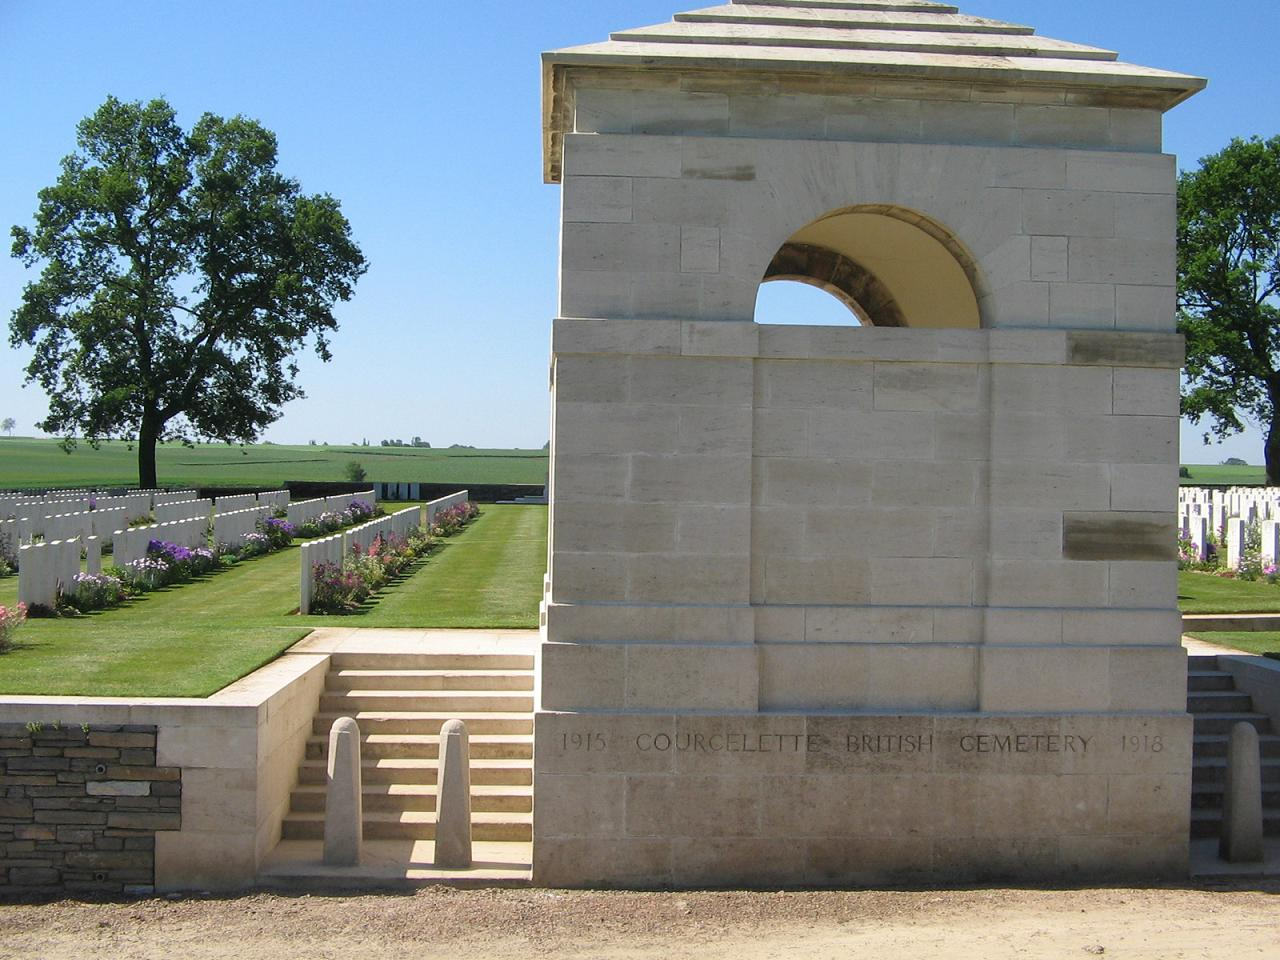 Courcelette British Cemetery, France